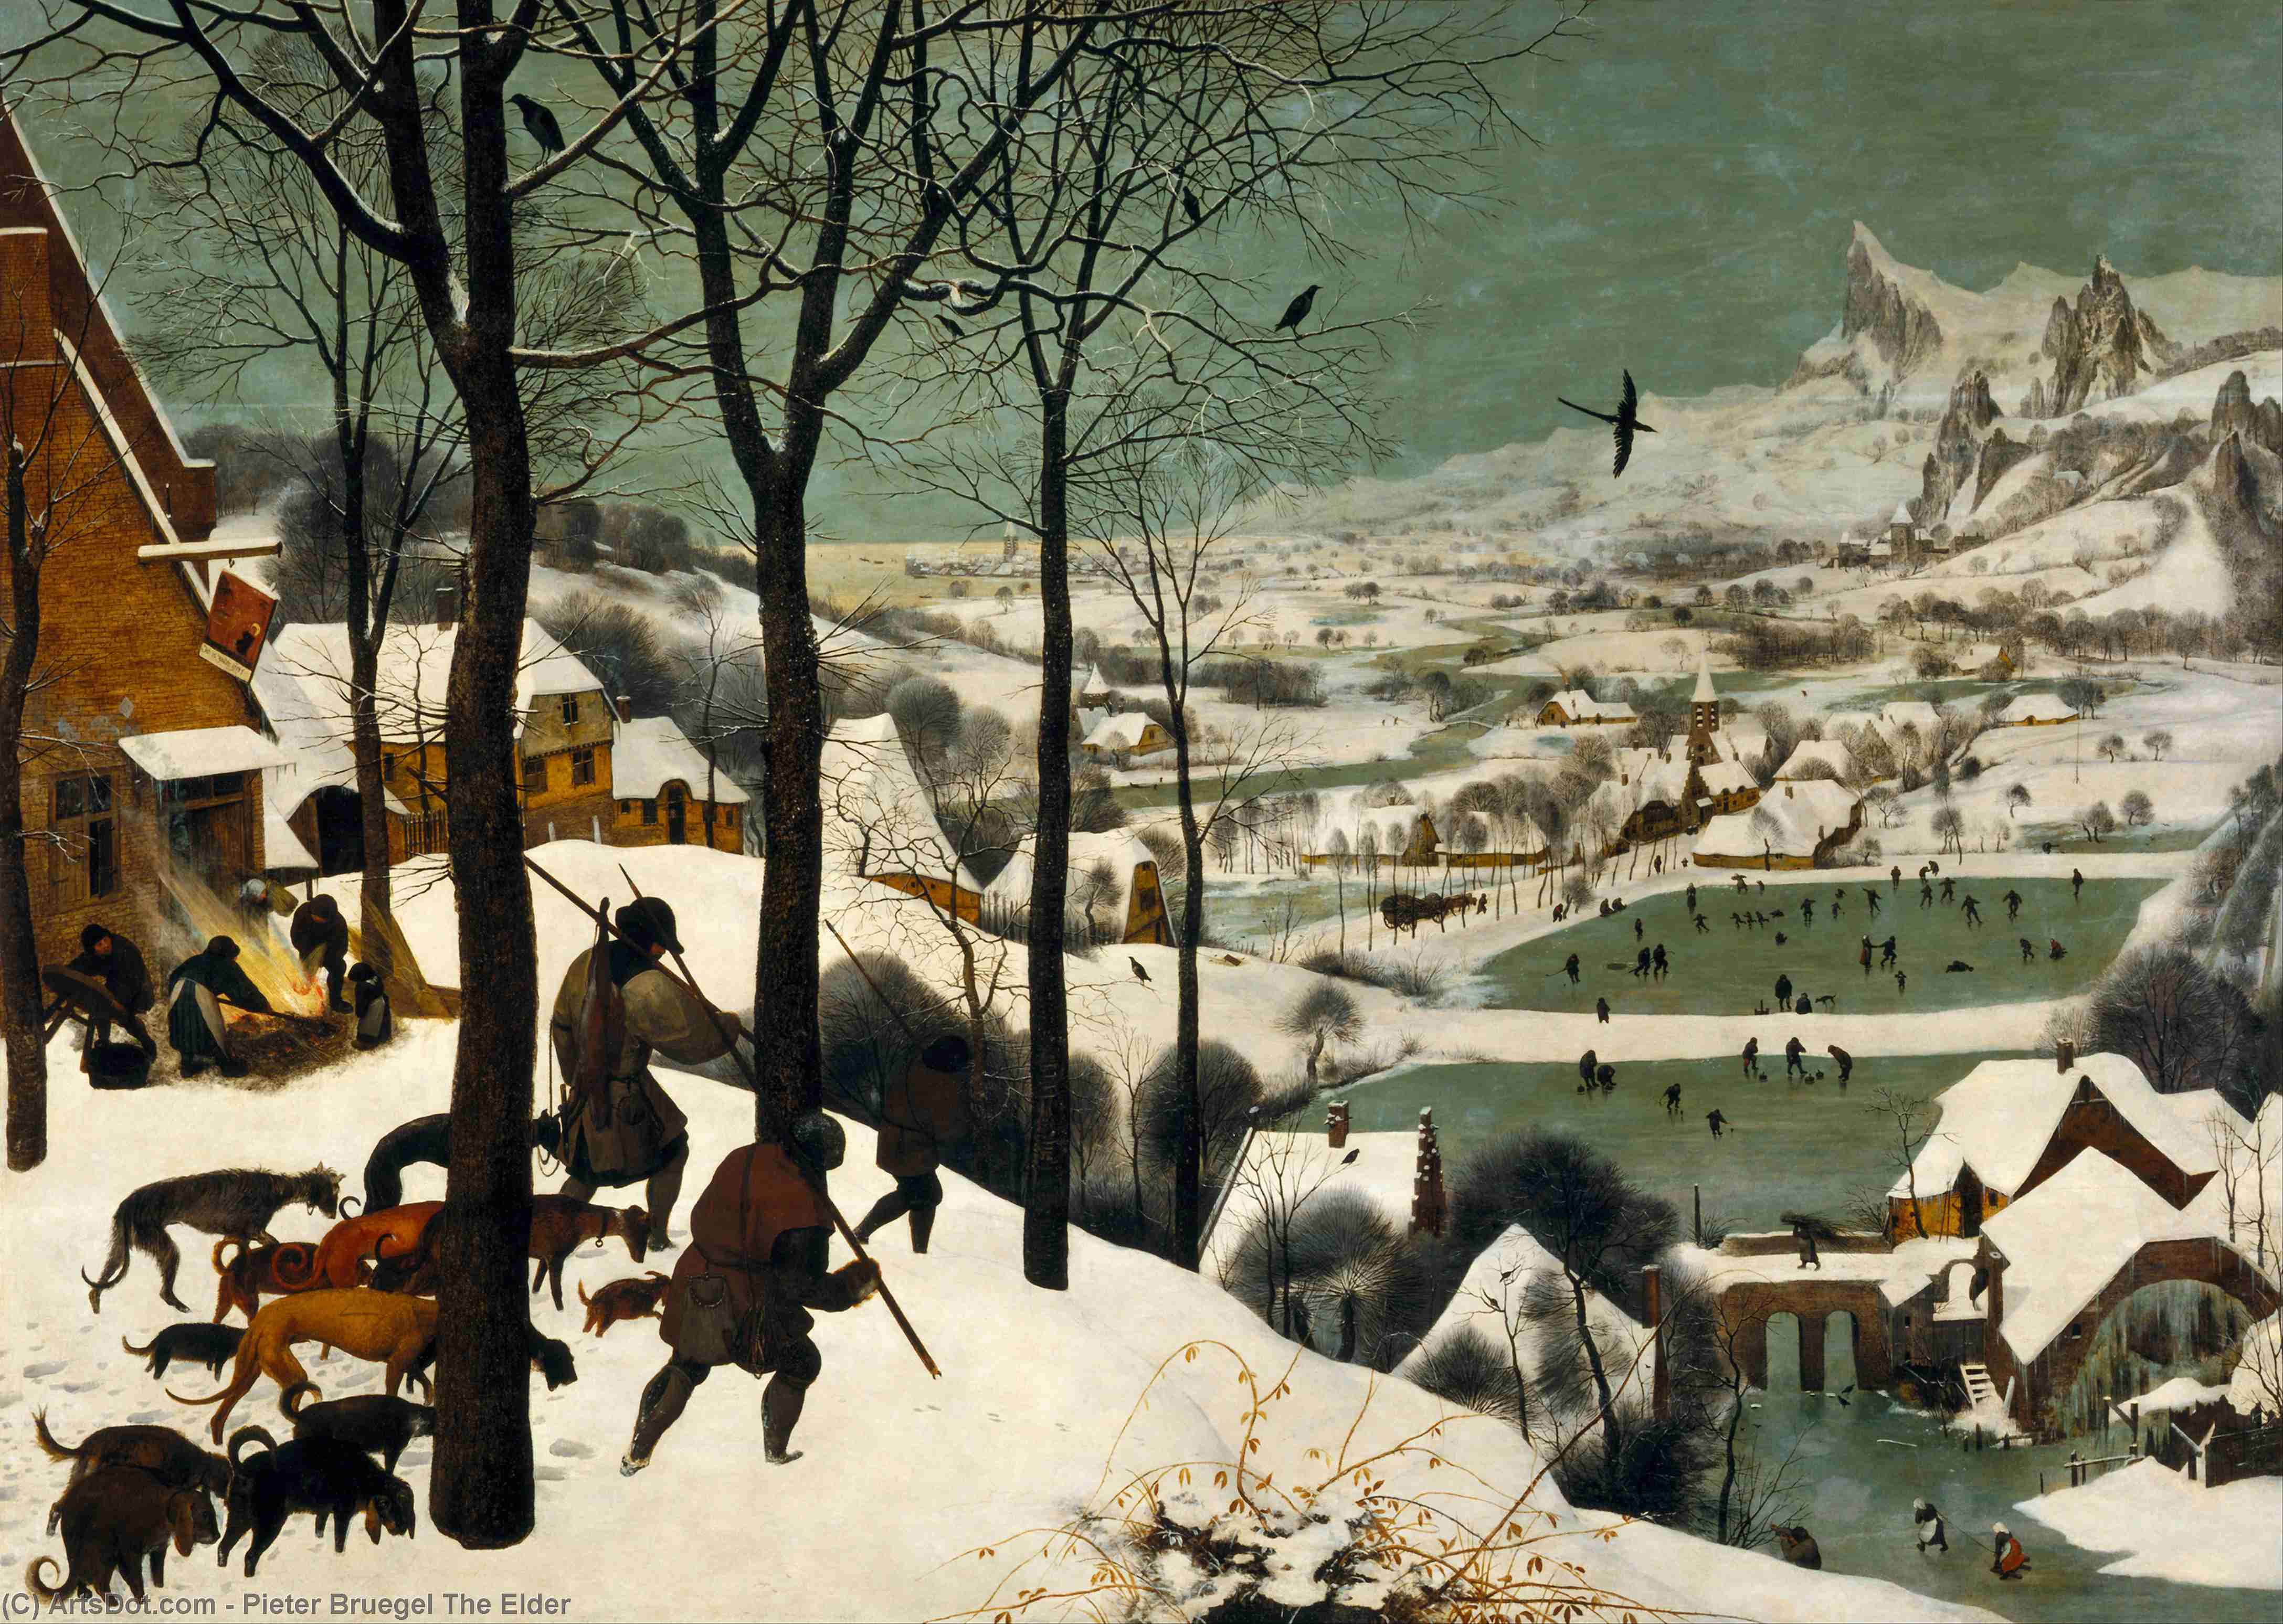 Order Art Reproduction : The Hunters in the Snow (Winter), 1565 by Pieter Bruegel The Elder (1525-1569, Belgium) | ArtsDot.com